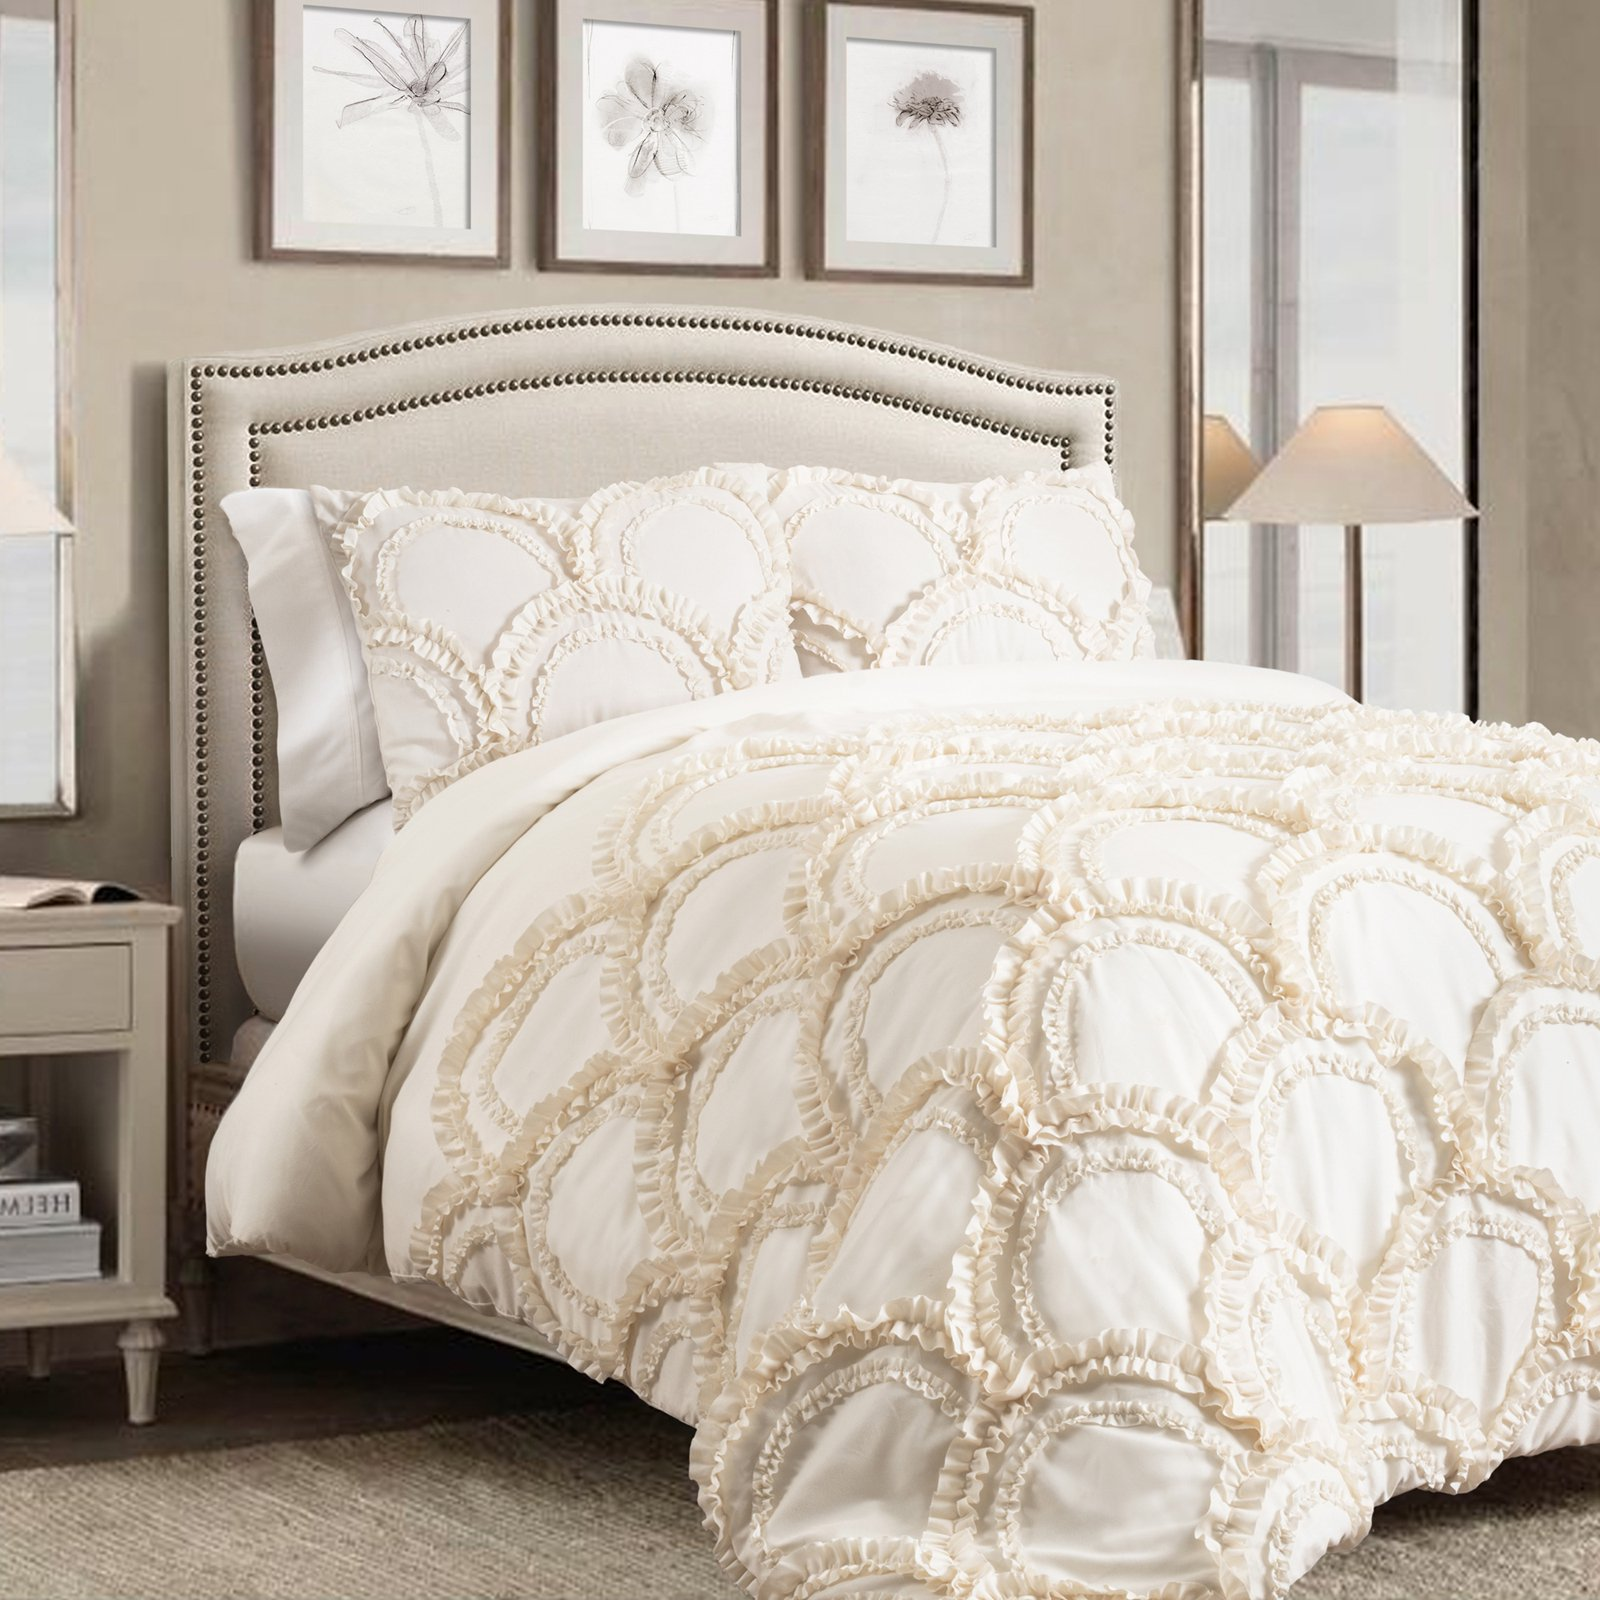 Chic 3-Piece Comforter Set by Lush Decor